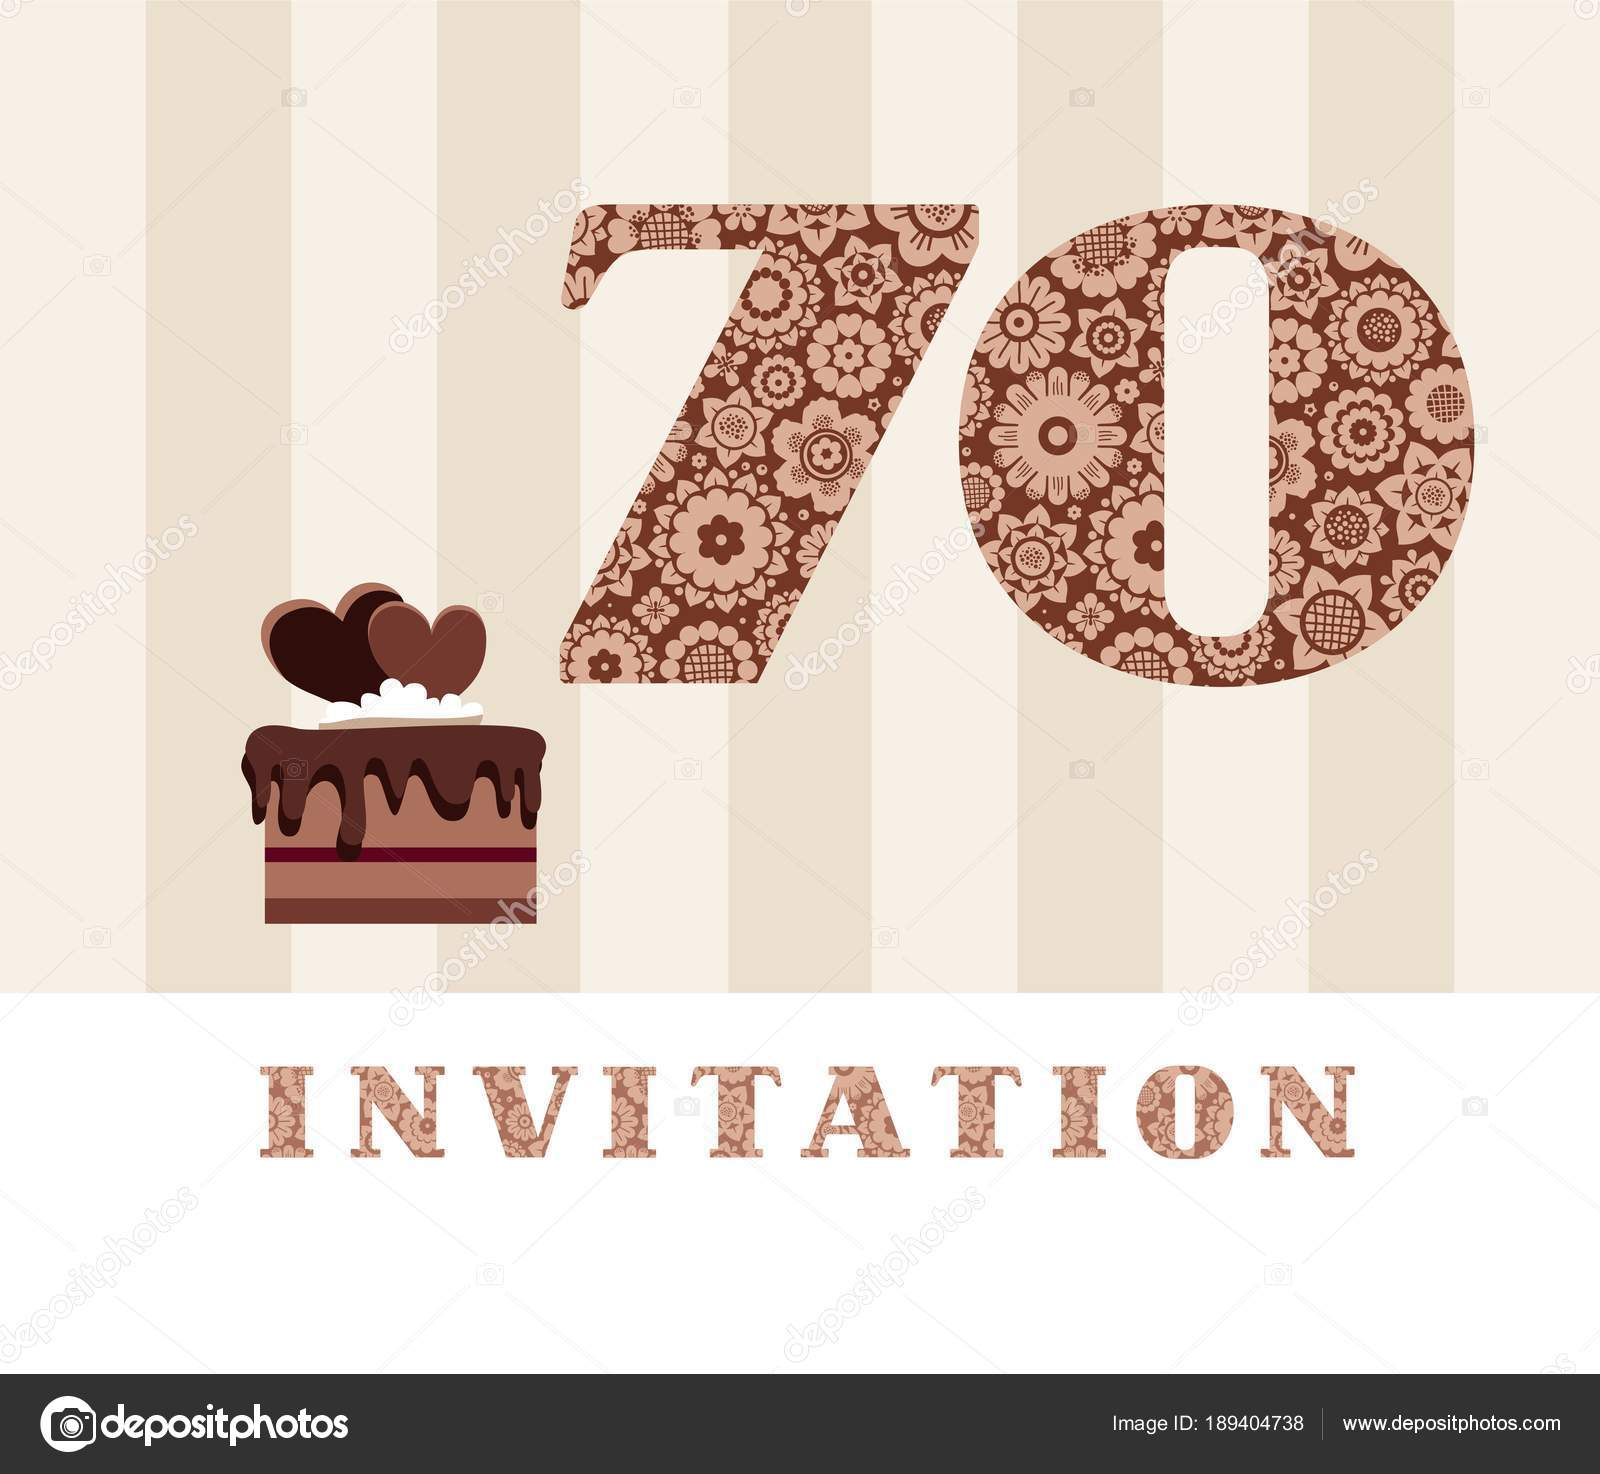 Invitation 70 Years Old Chocolate Cake Heart Vector The To Birthday Party Wedding Anniversary Color Card With Hearts